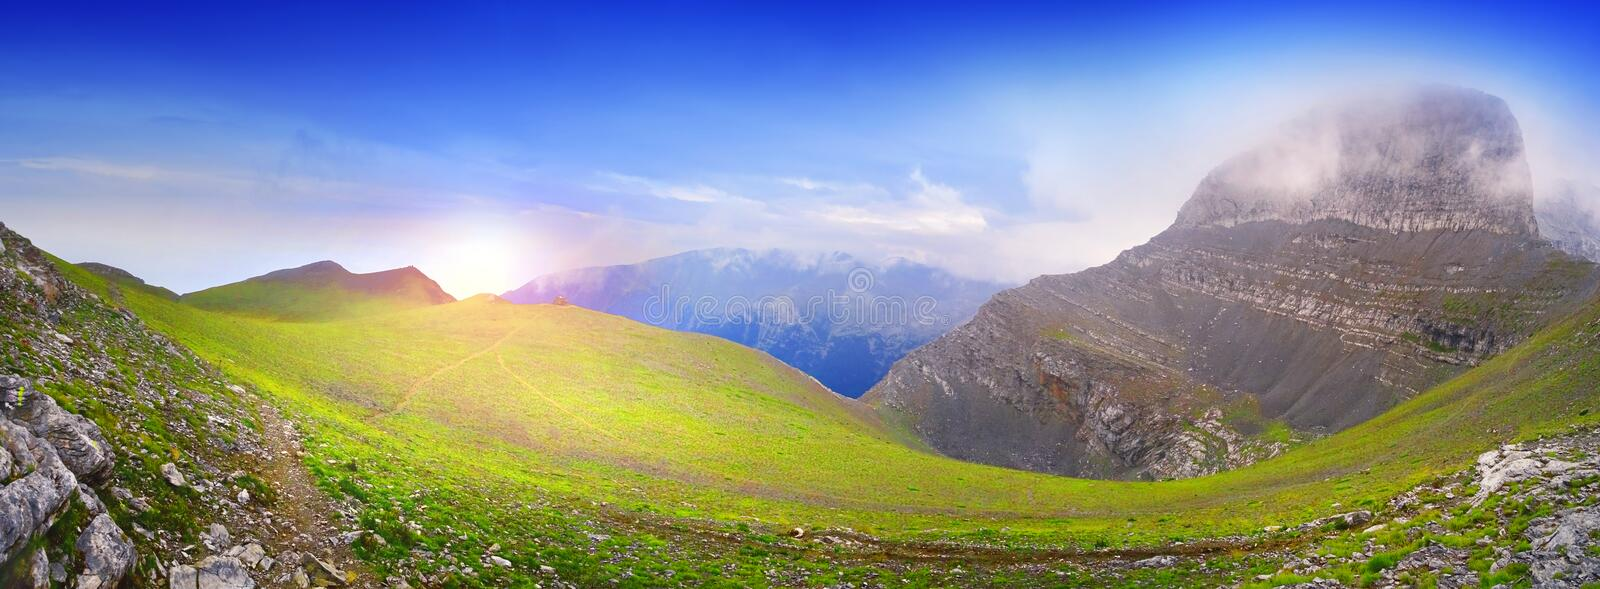 Magnificent sunrise at the mythical Mount Olympus in Greece stock photos